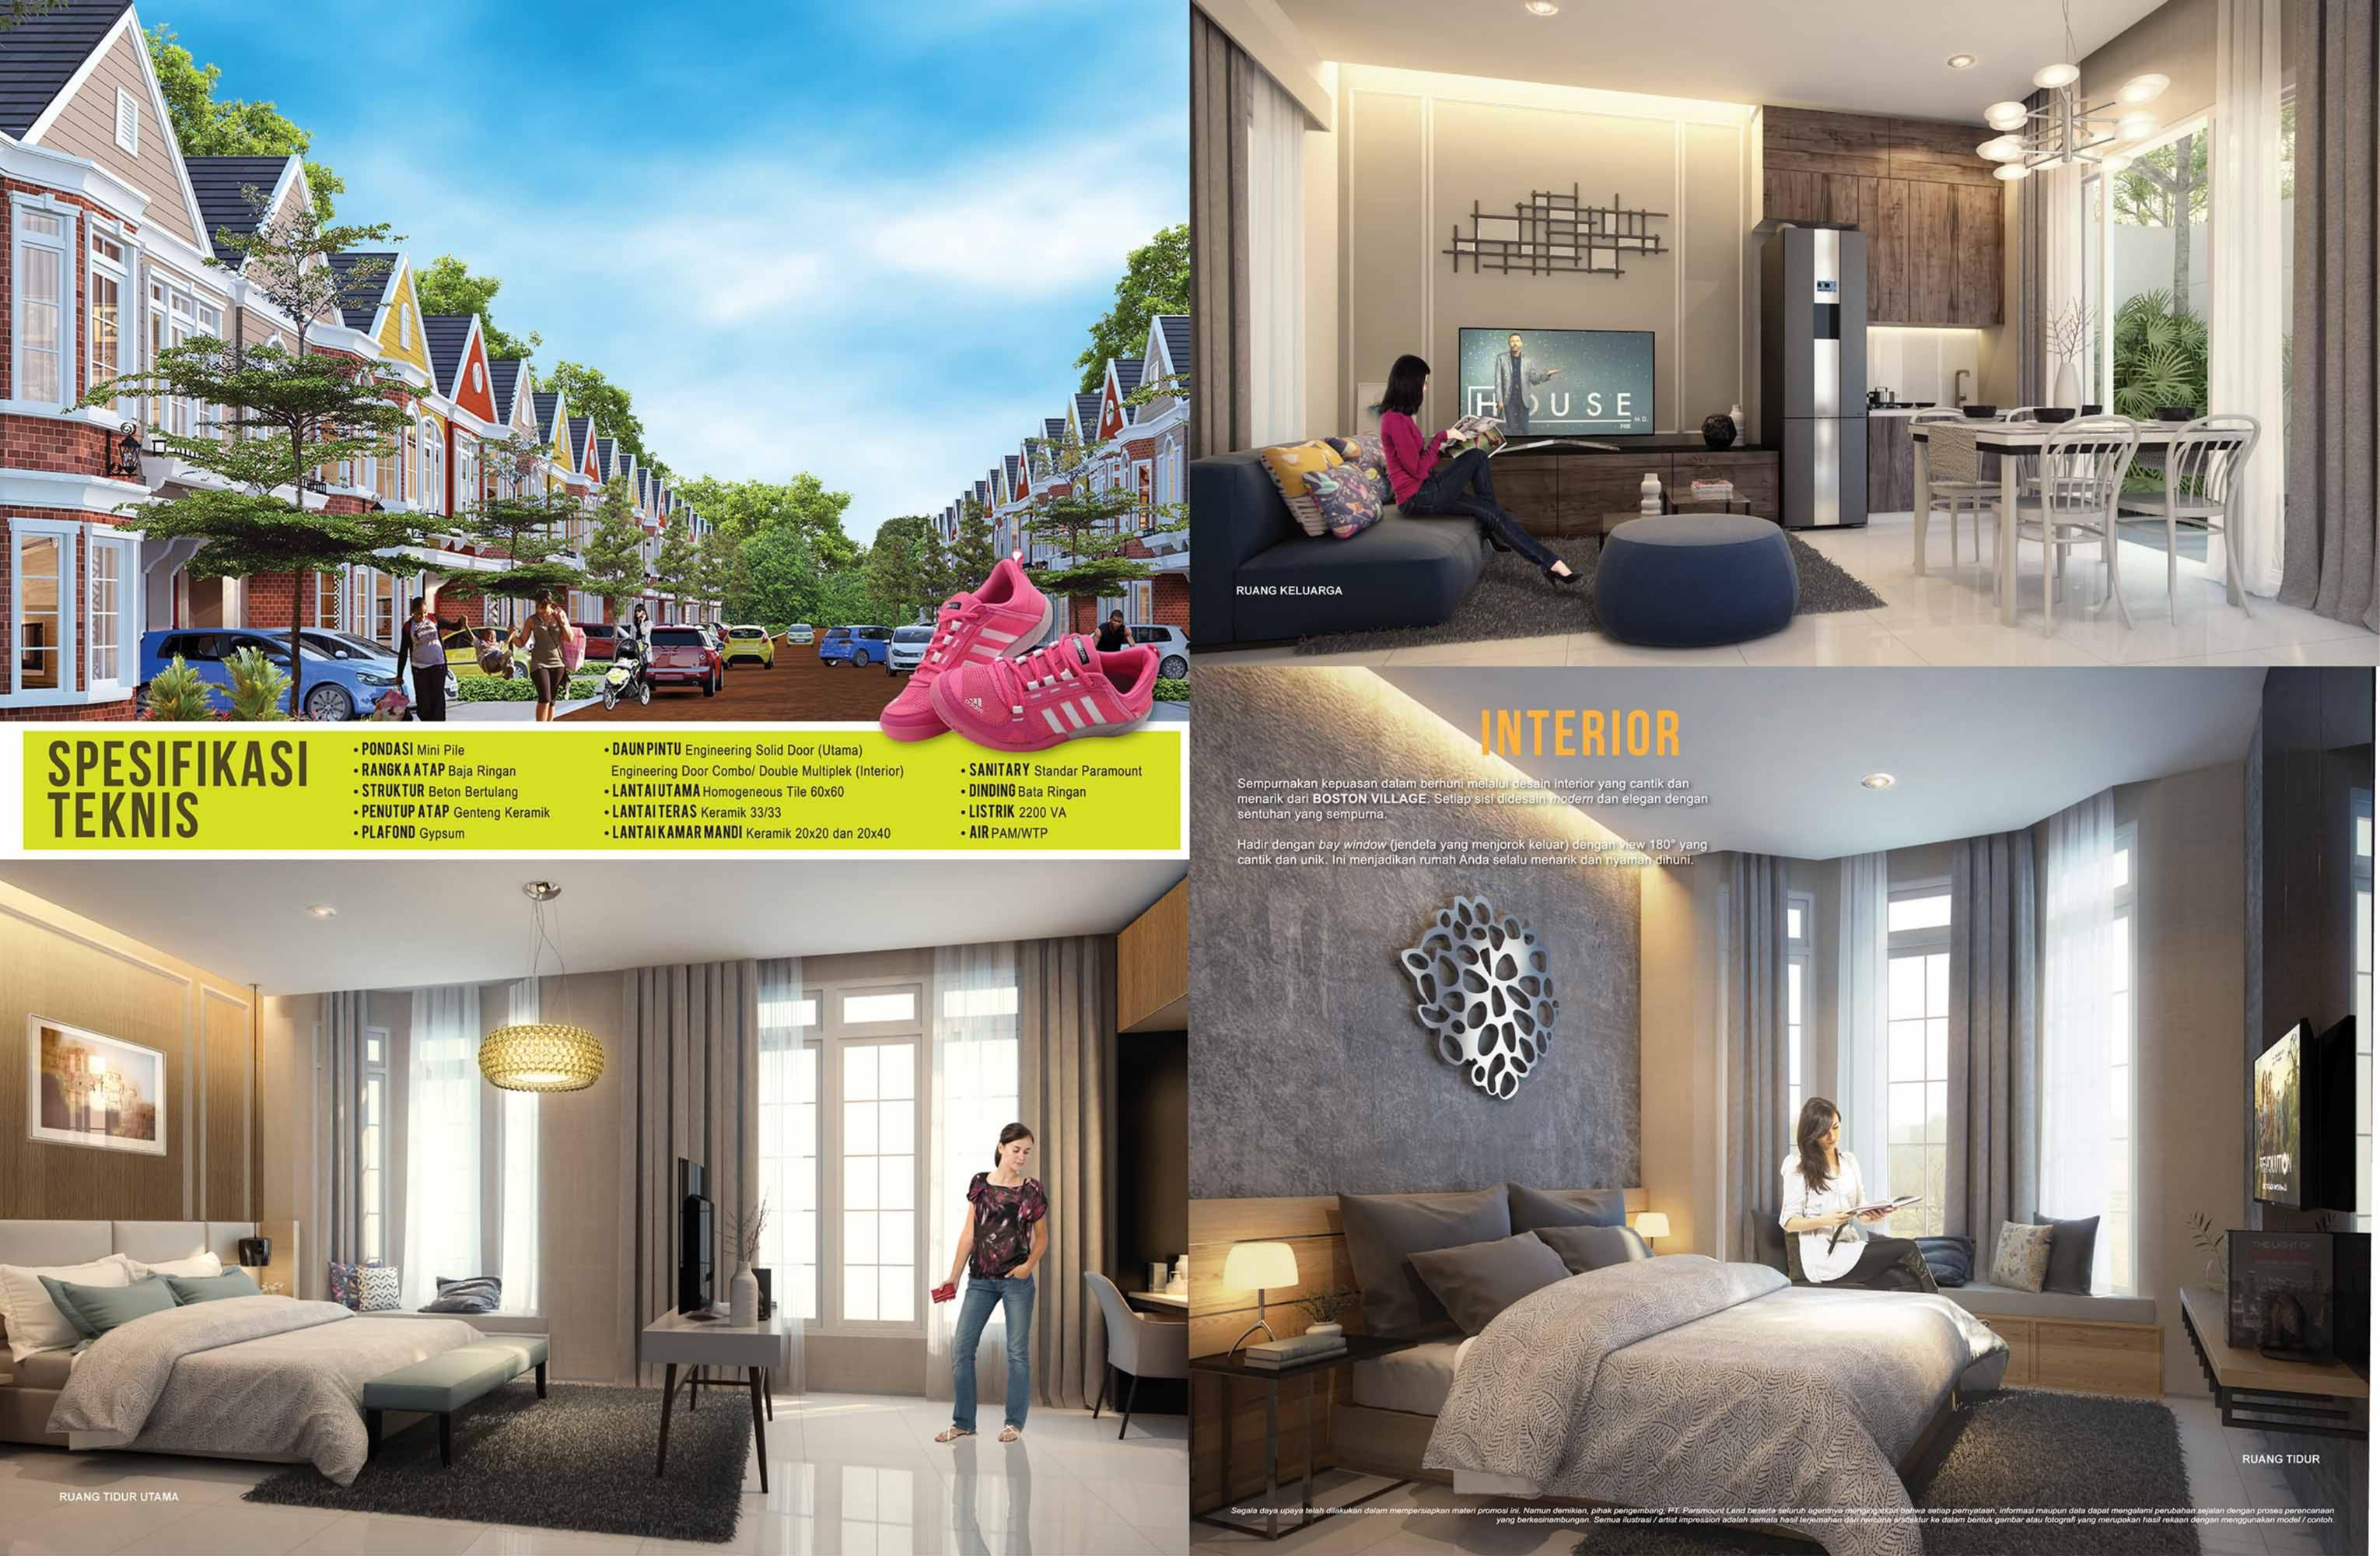 Boston Village Serpong Club House | Boston Village Gading Serpong ...